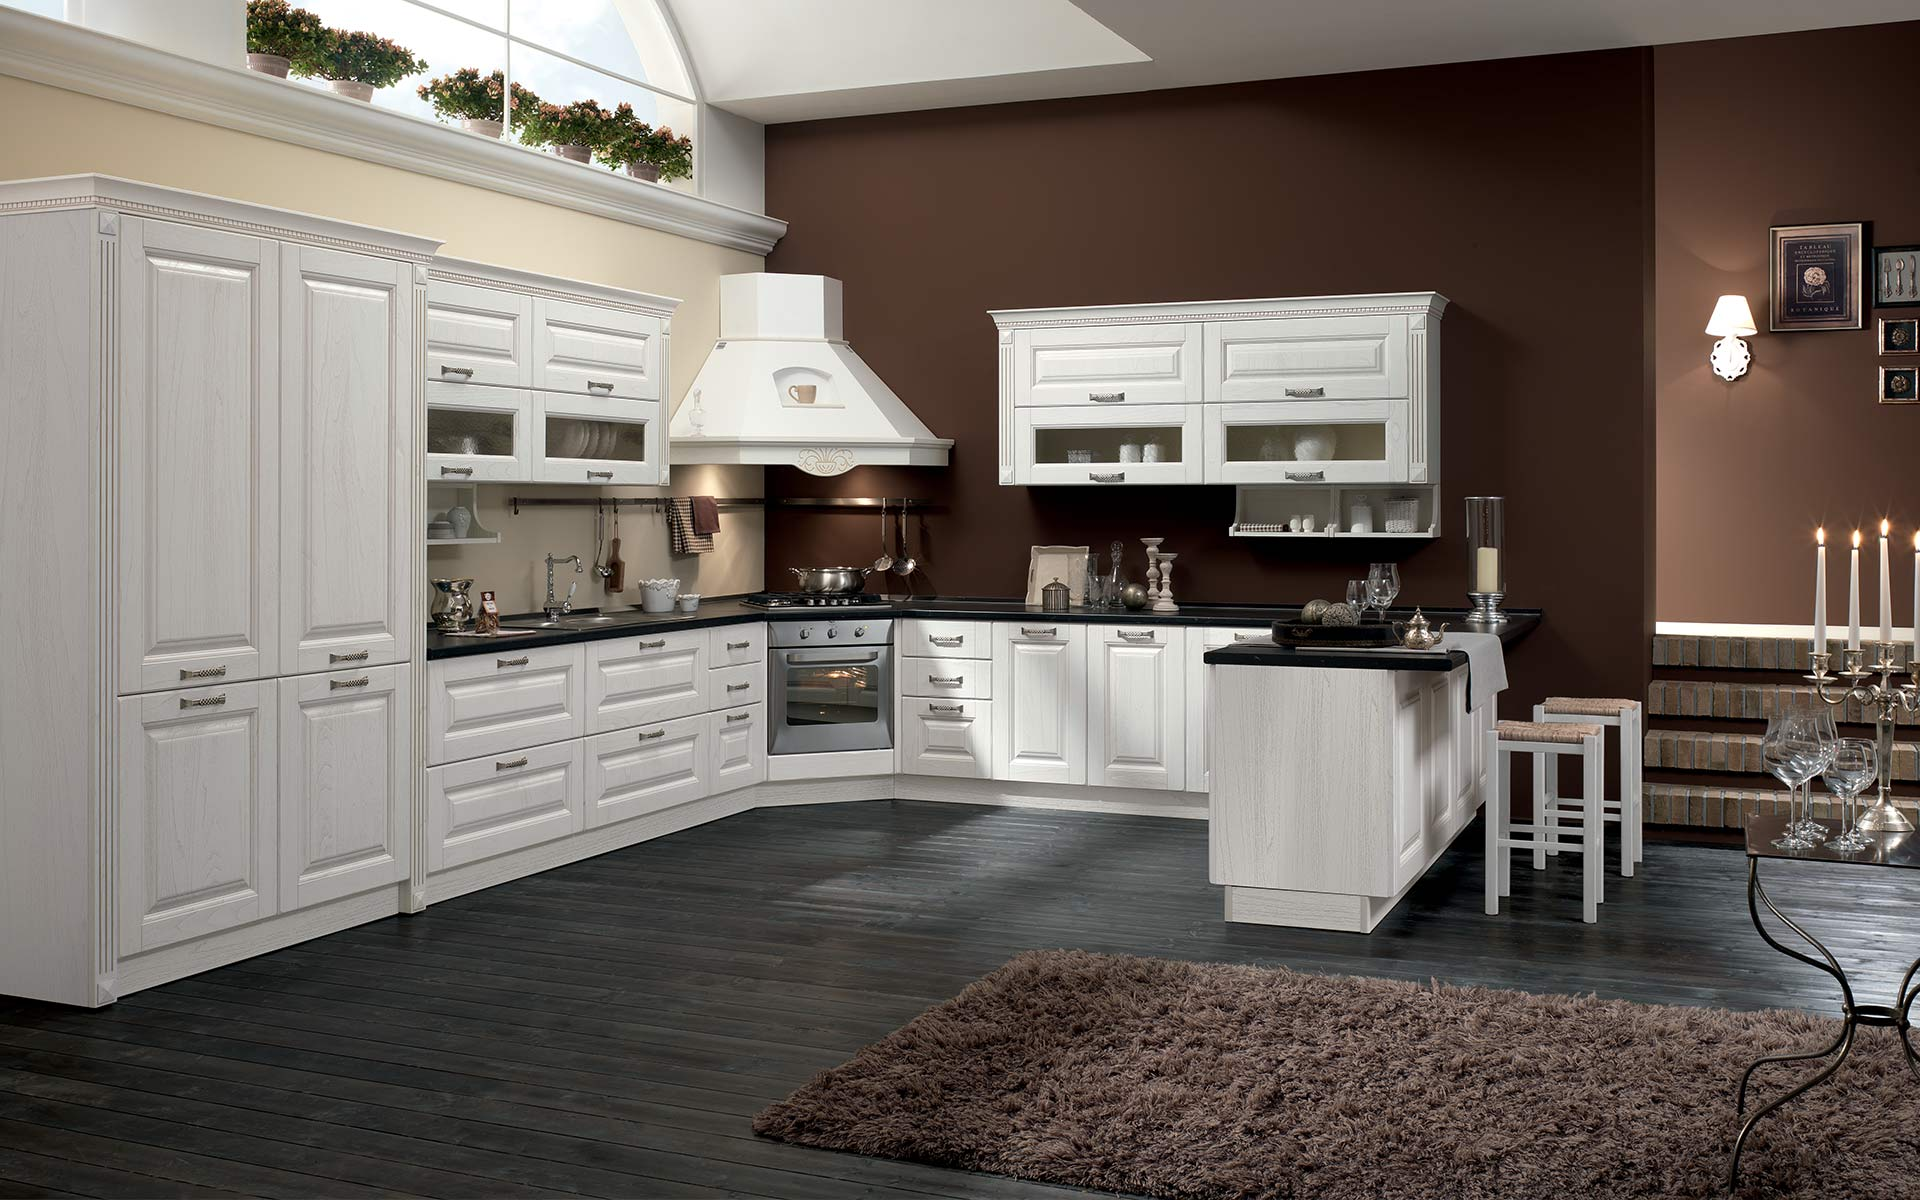 Spar - Kitchens and Home Furnishings